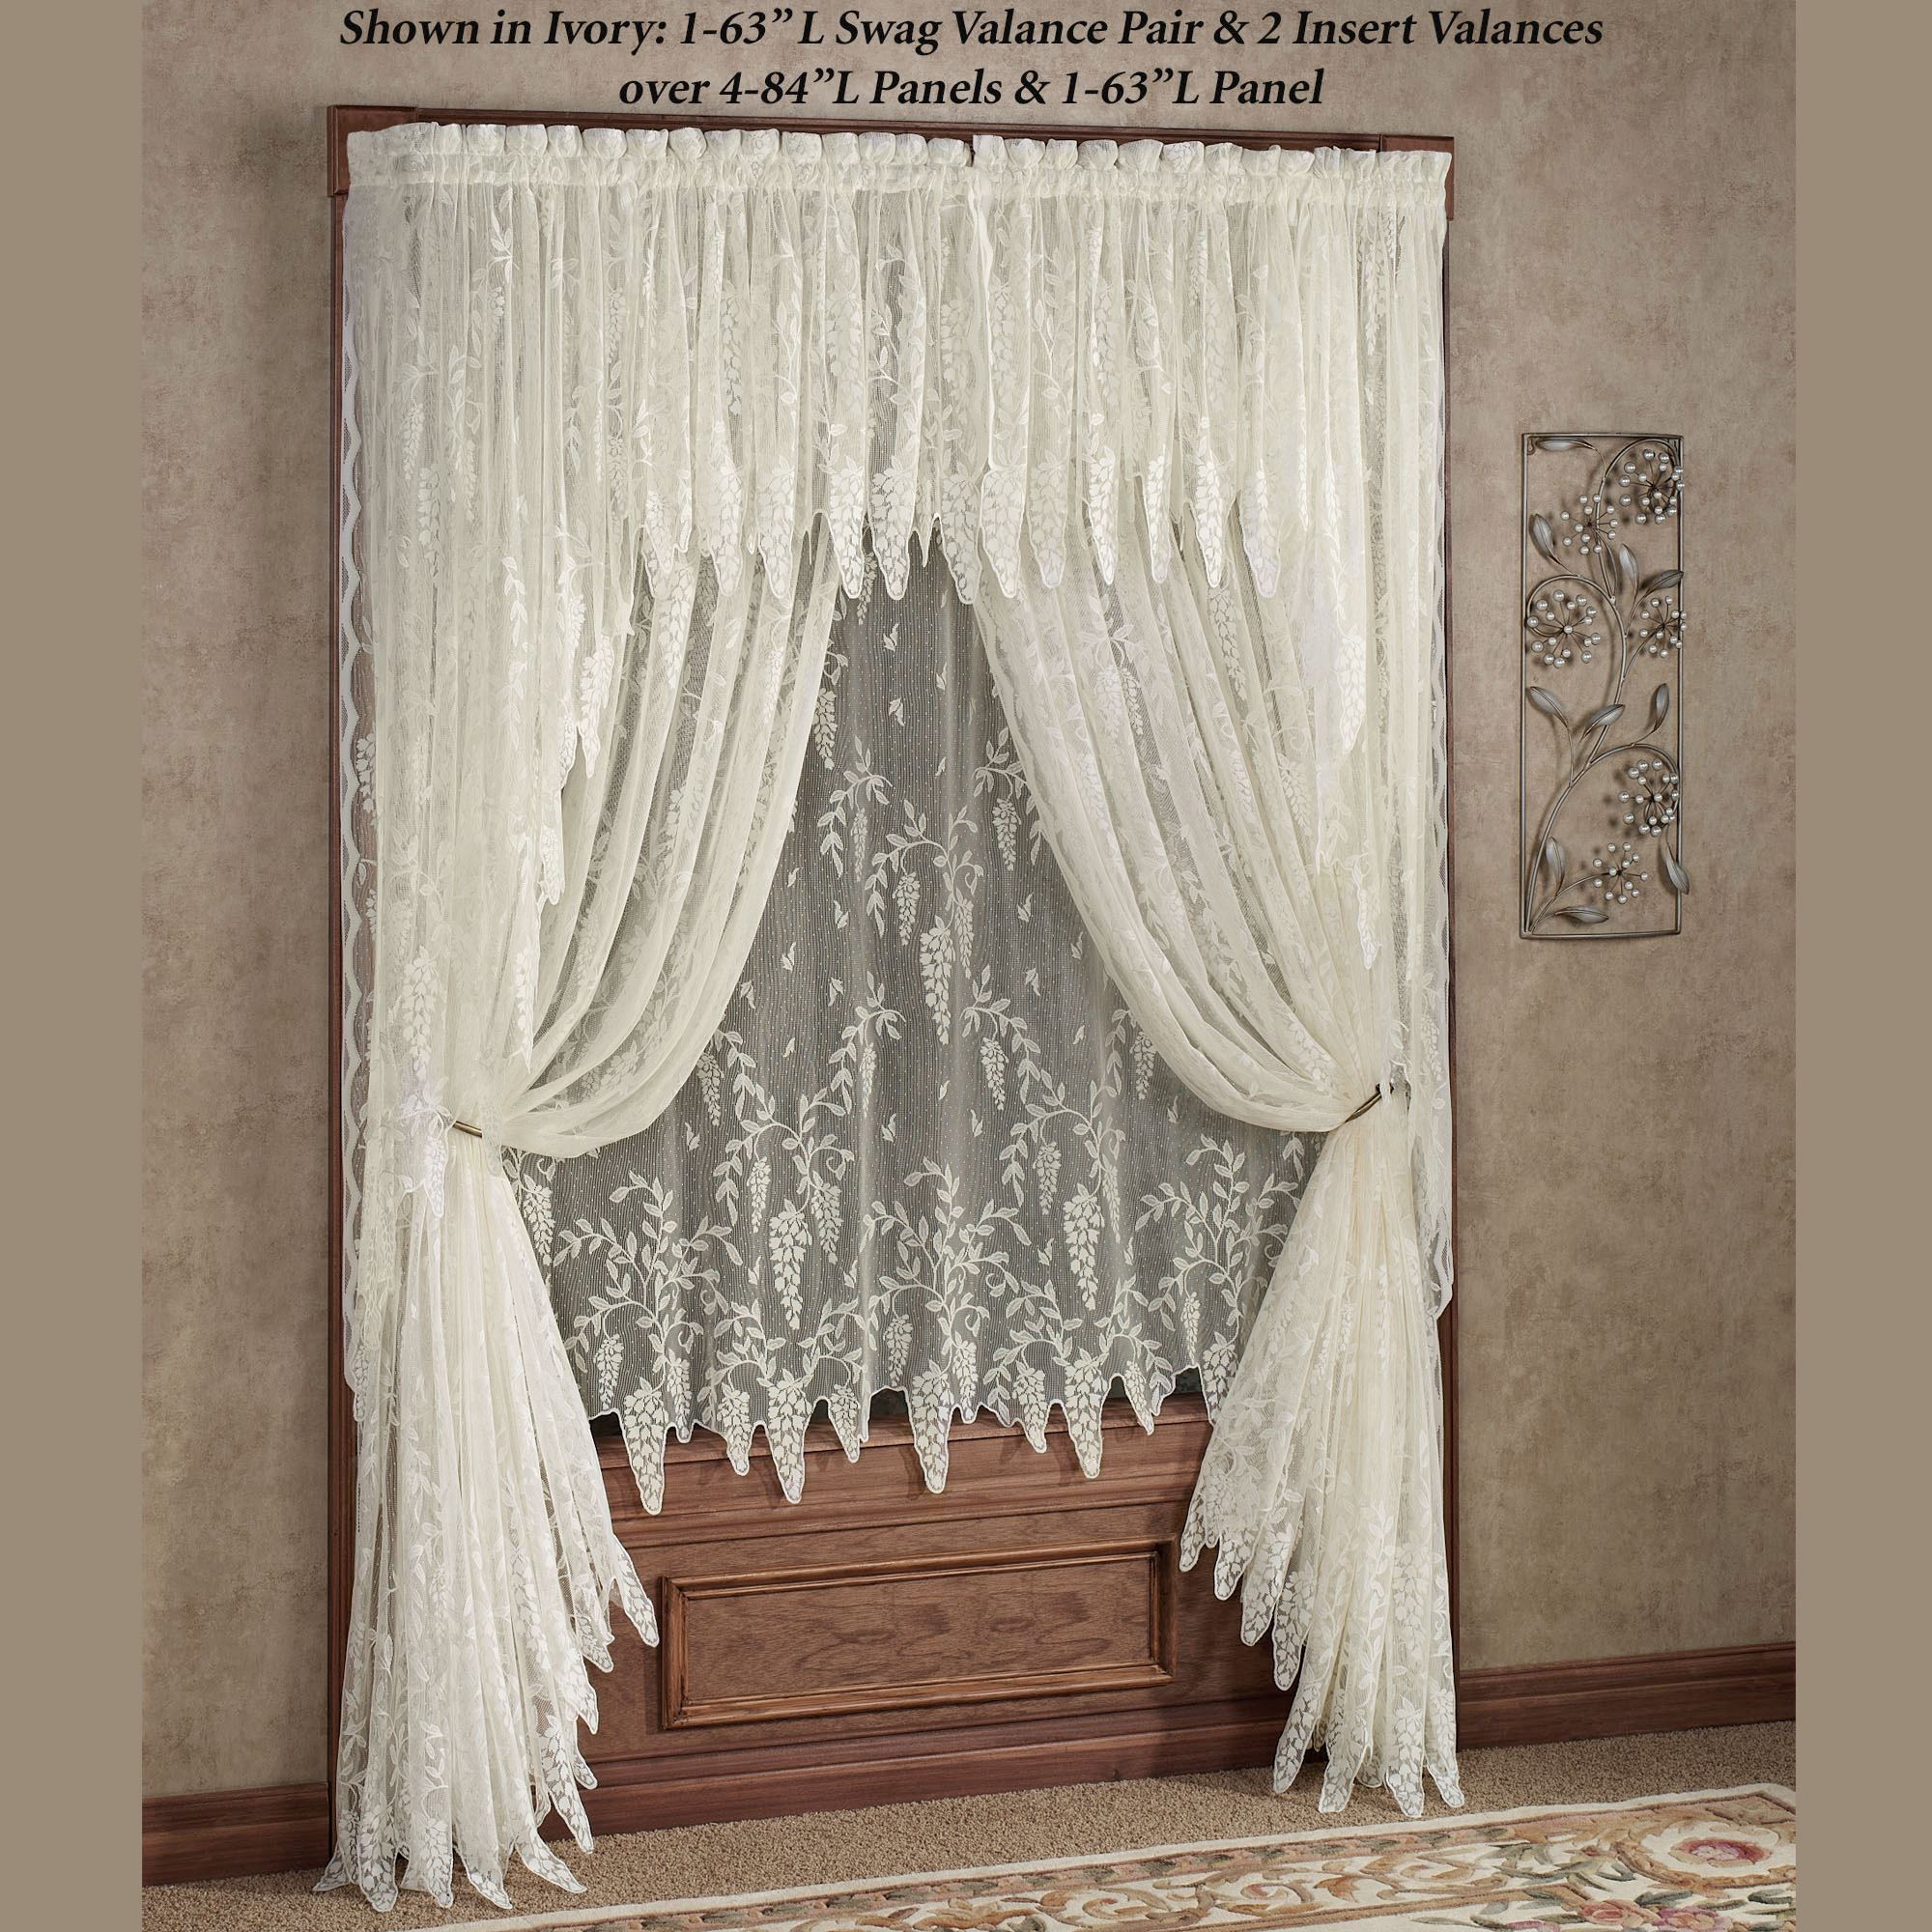 Exquisite Lace Curtains for Your Vintage Home Interior